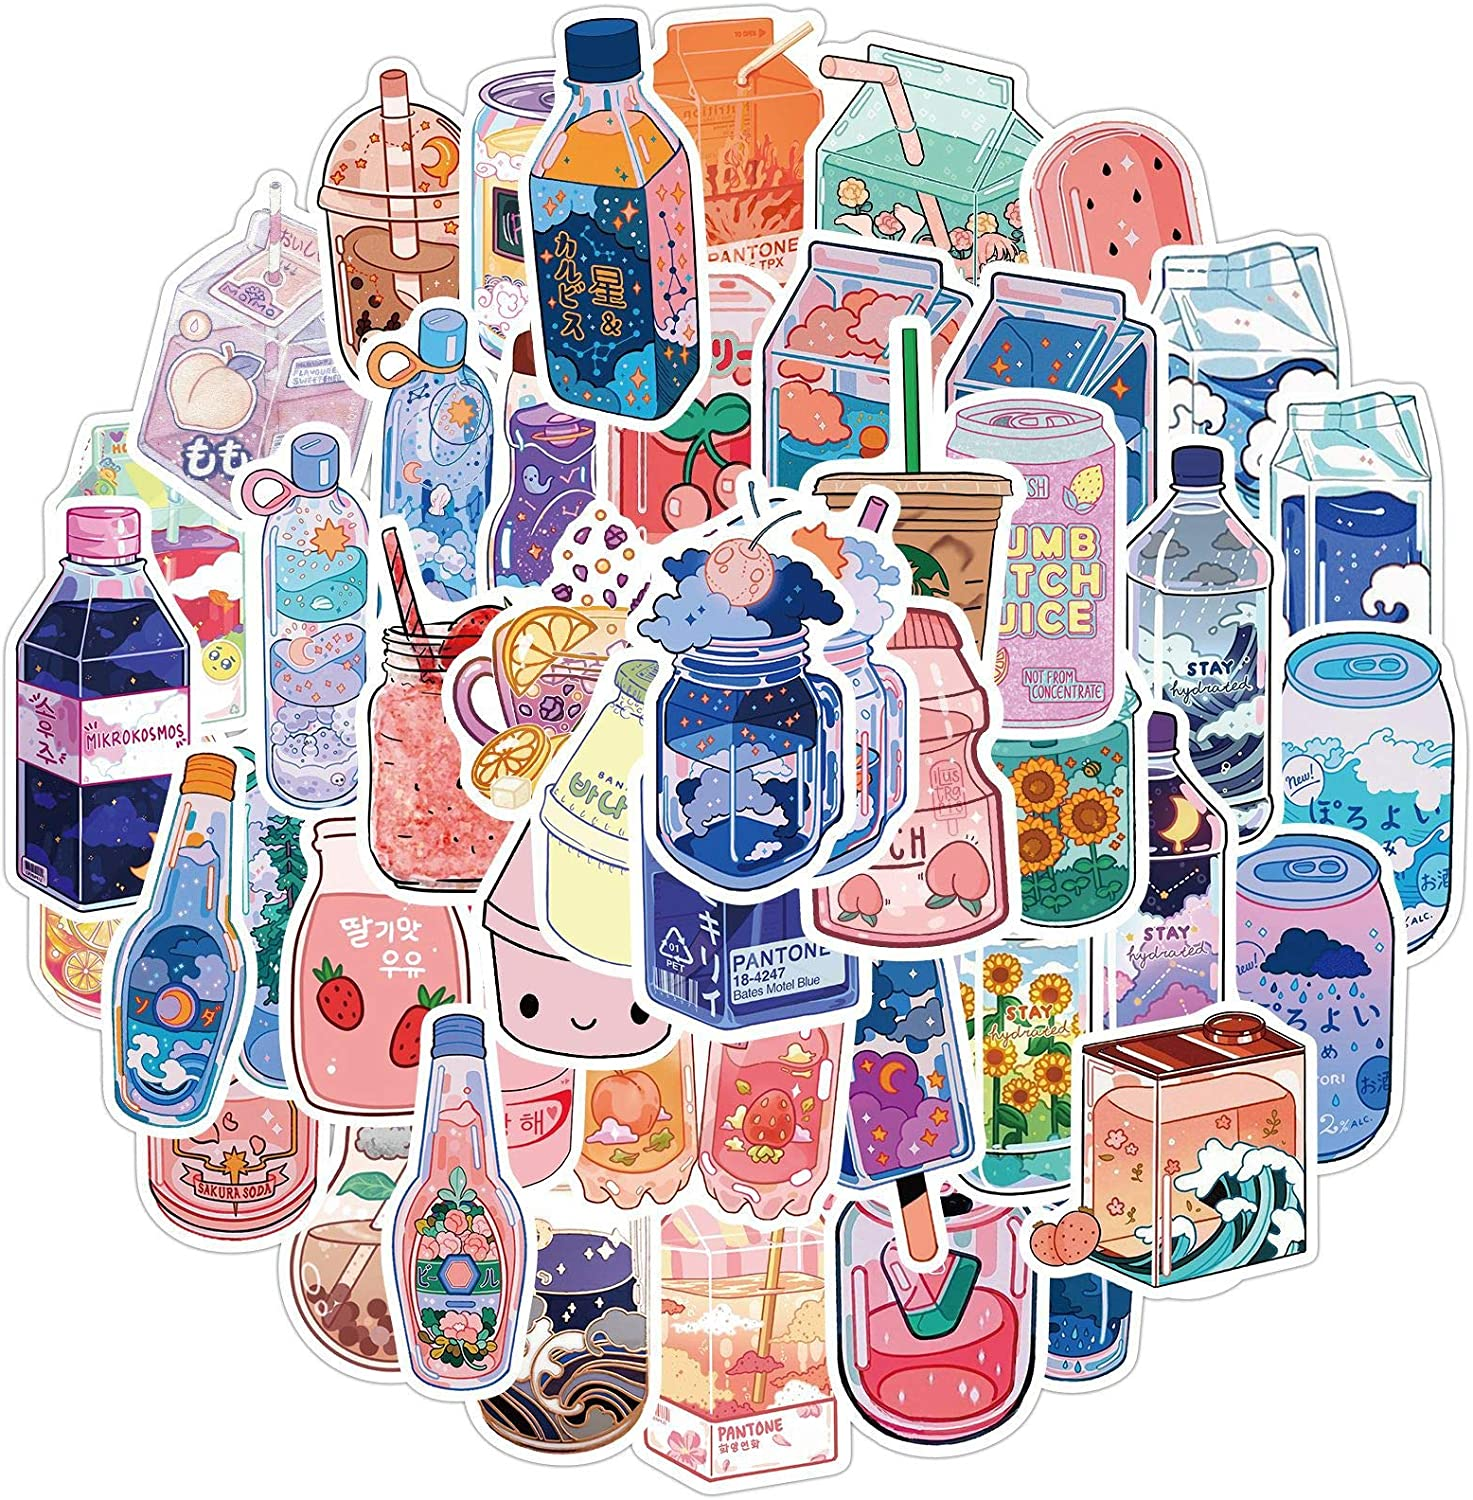 Fashionable Cartoon Beverage Bottle Stickers Pack 50Pcs Colorful Waterproof Cute Stickers for Flask, Laptop, Water Bottle, Cute Aesthetic Vinyl Doodle Decals (Sweet Drinks)